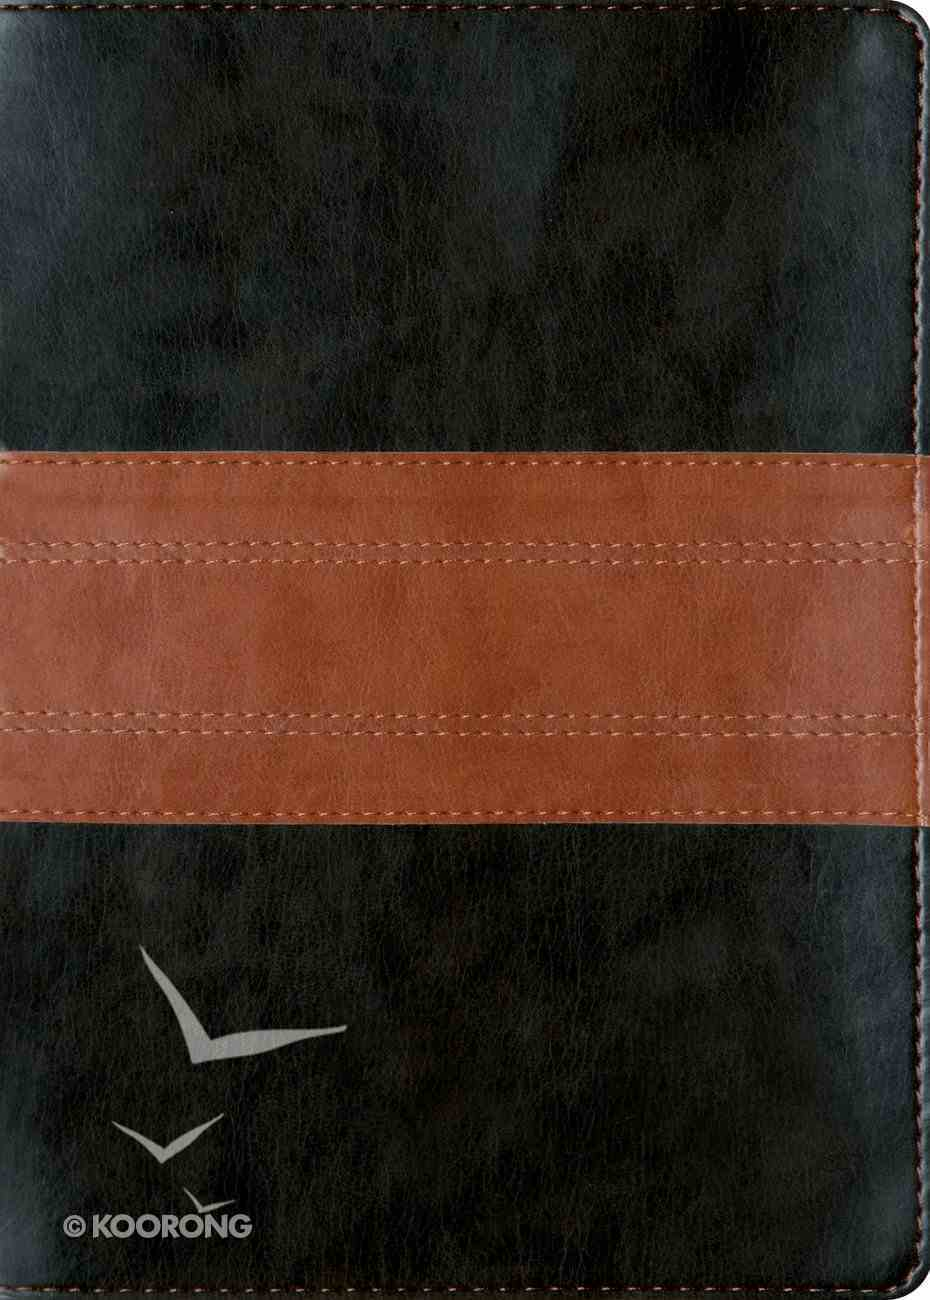 ESV Macarthur Study Bible Black/Tan Trail Design Imitation Leather